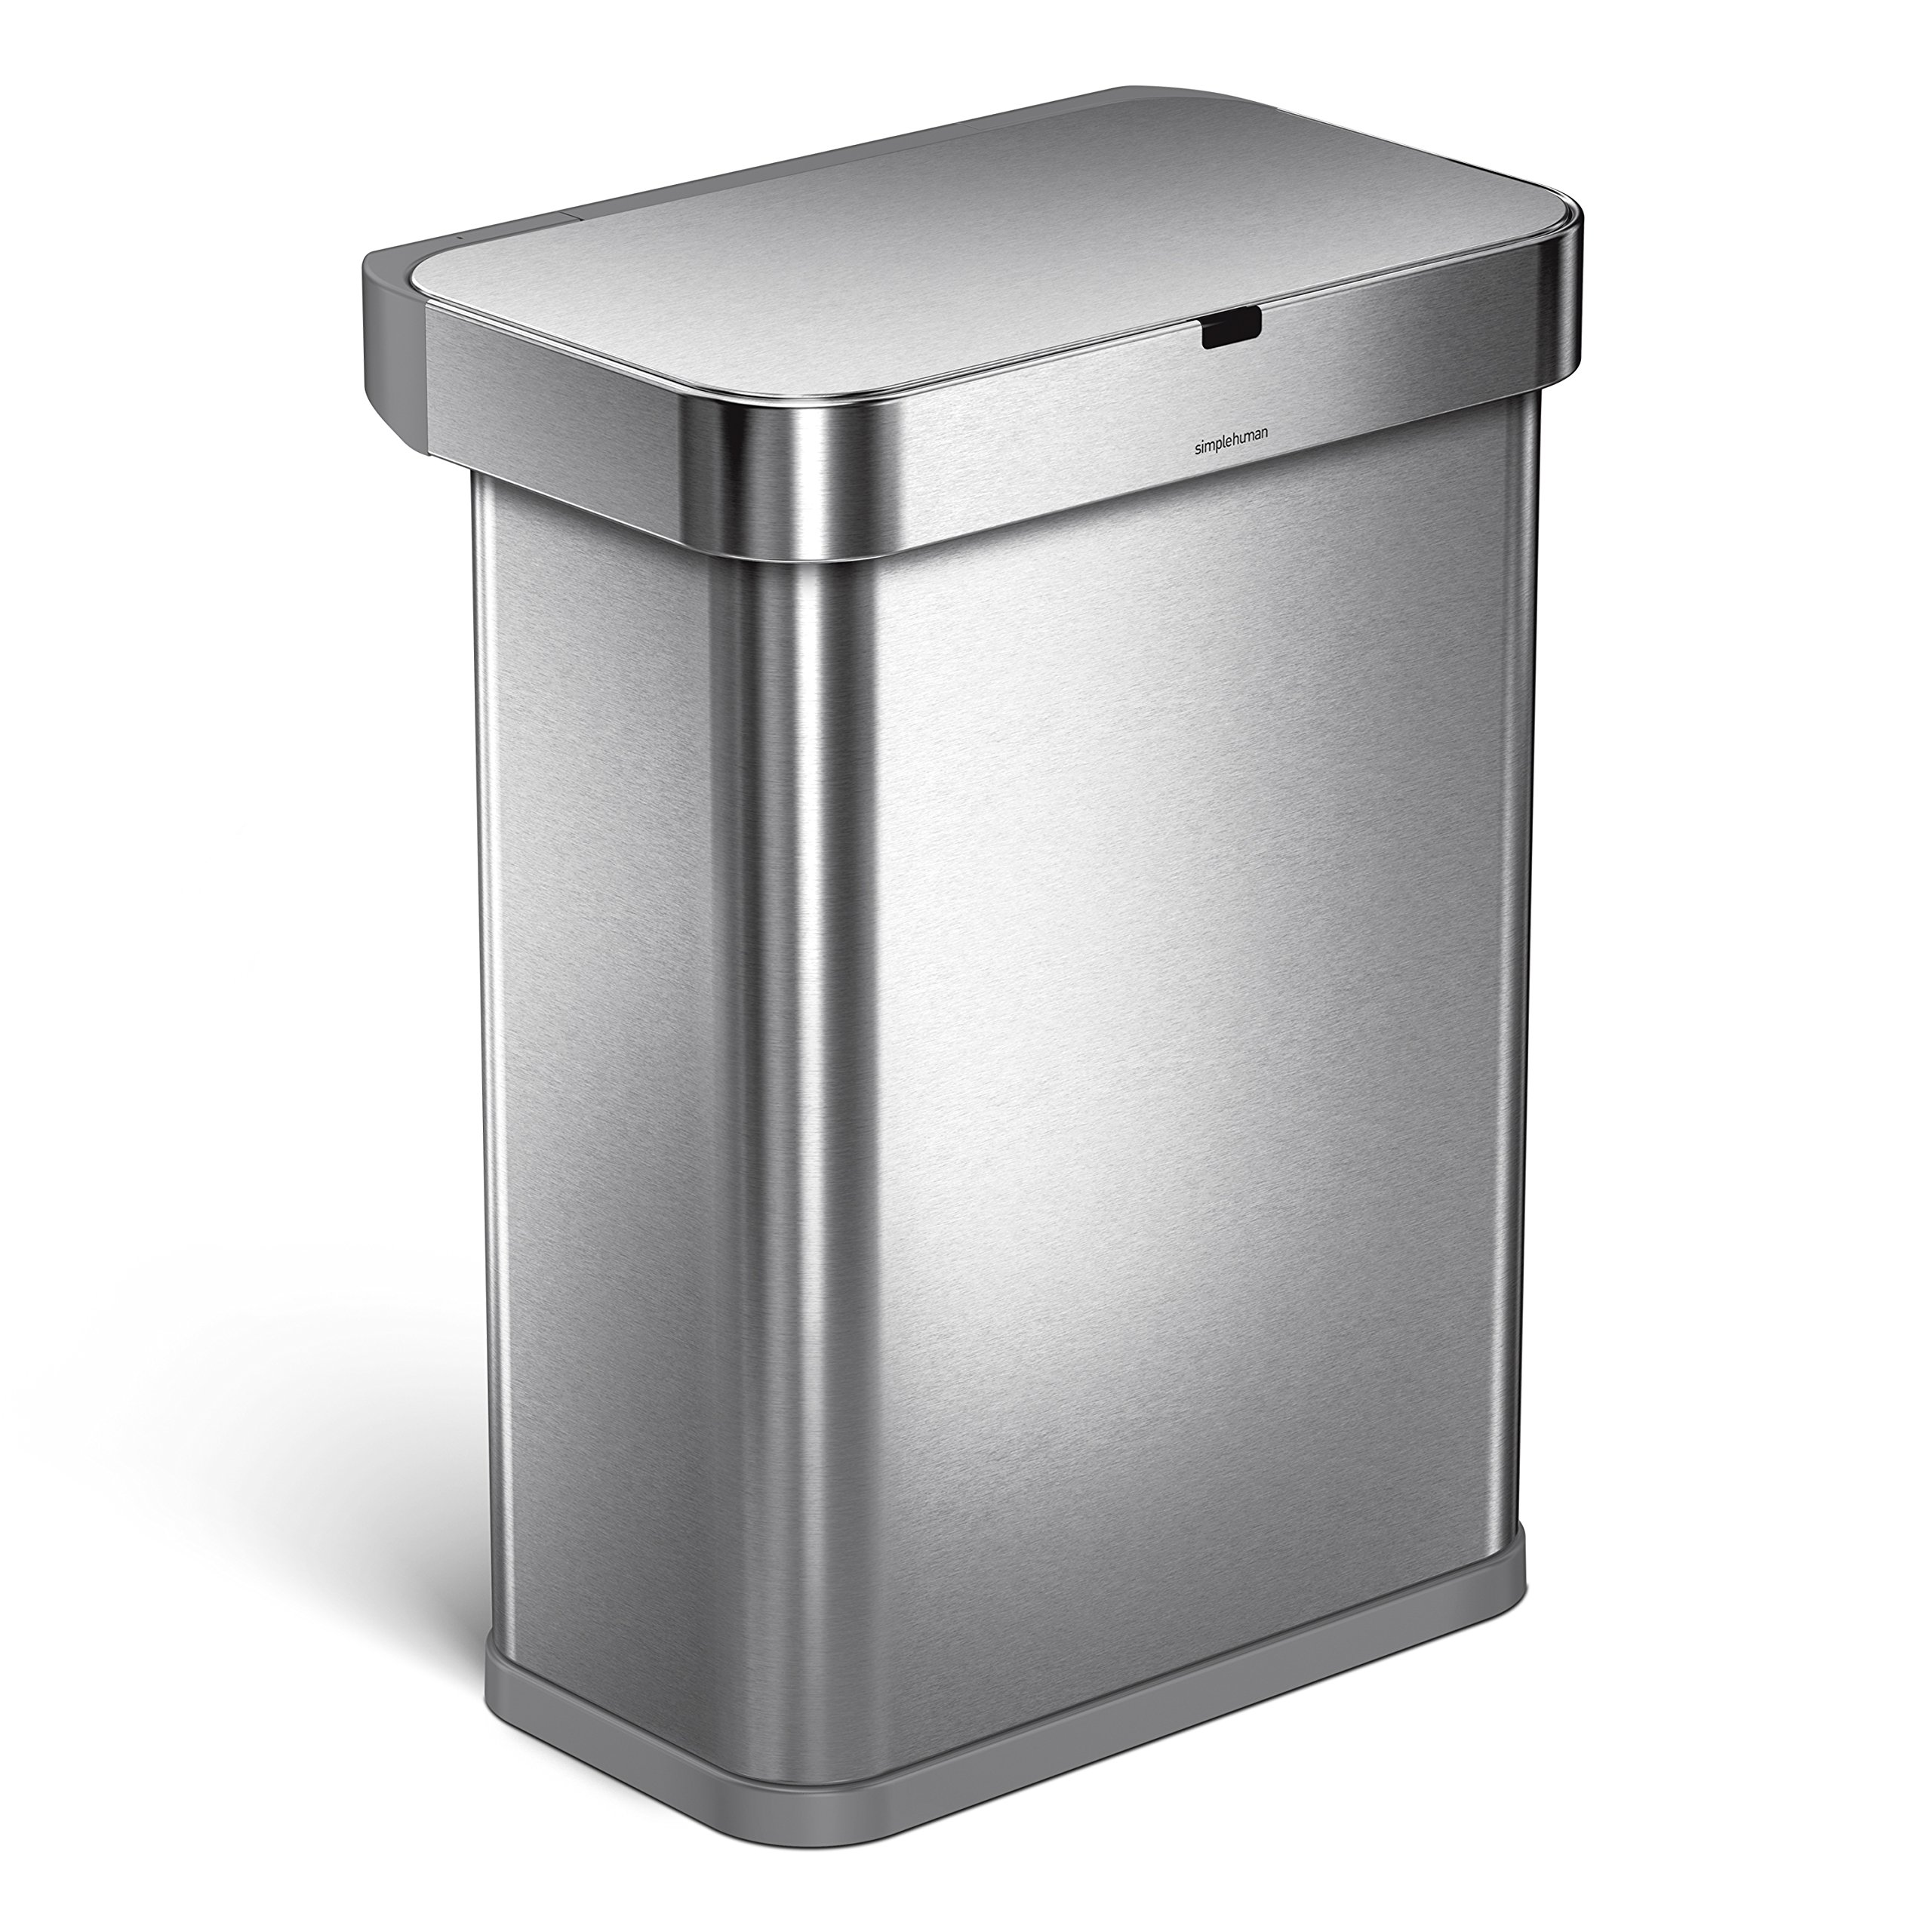 simplehuman 58 Liter / 15.3 Gallon 58L Stainless Steel Touch-Free Rectangular Kitchen Sensor Trash Can with Voice and Motion Sensor, Voice Activated, Brushed Stainless Steel